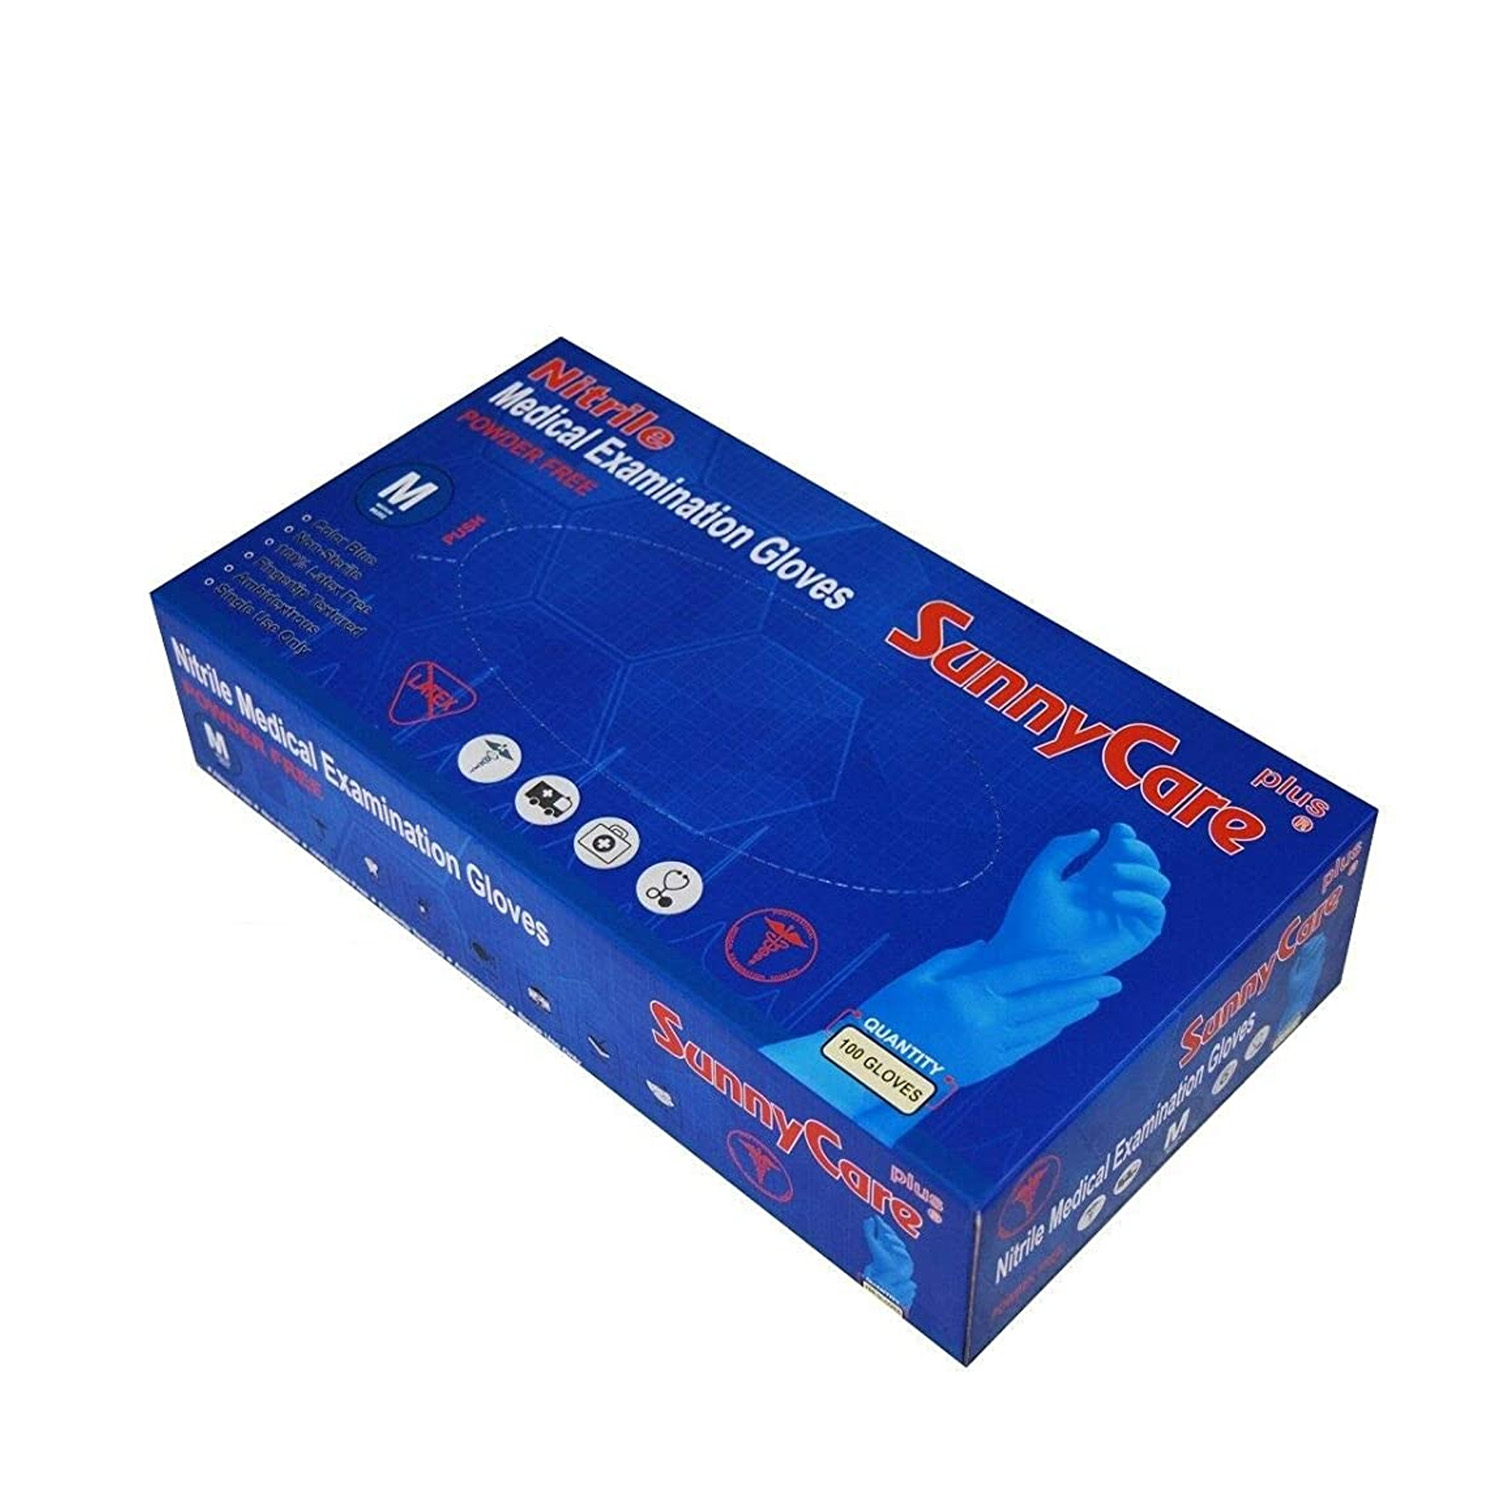 Sunnycare - Chemo Rated Medical Exam Gloves (1pallet 800 boxes)